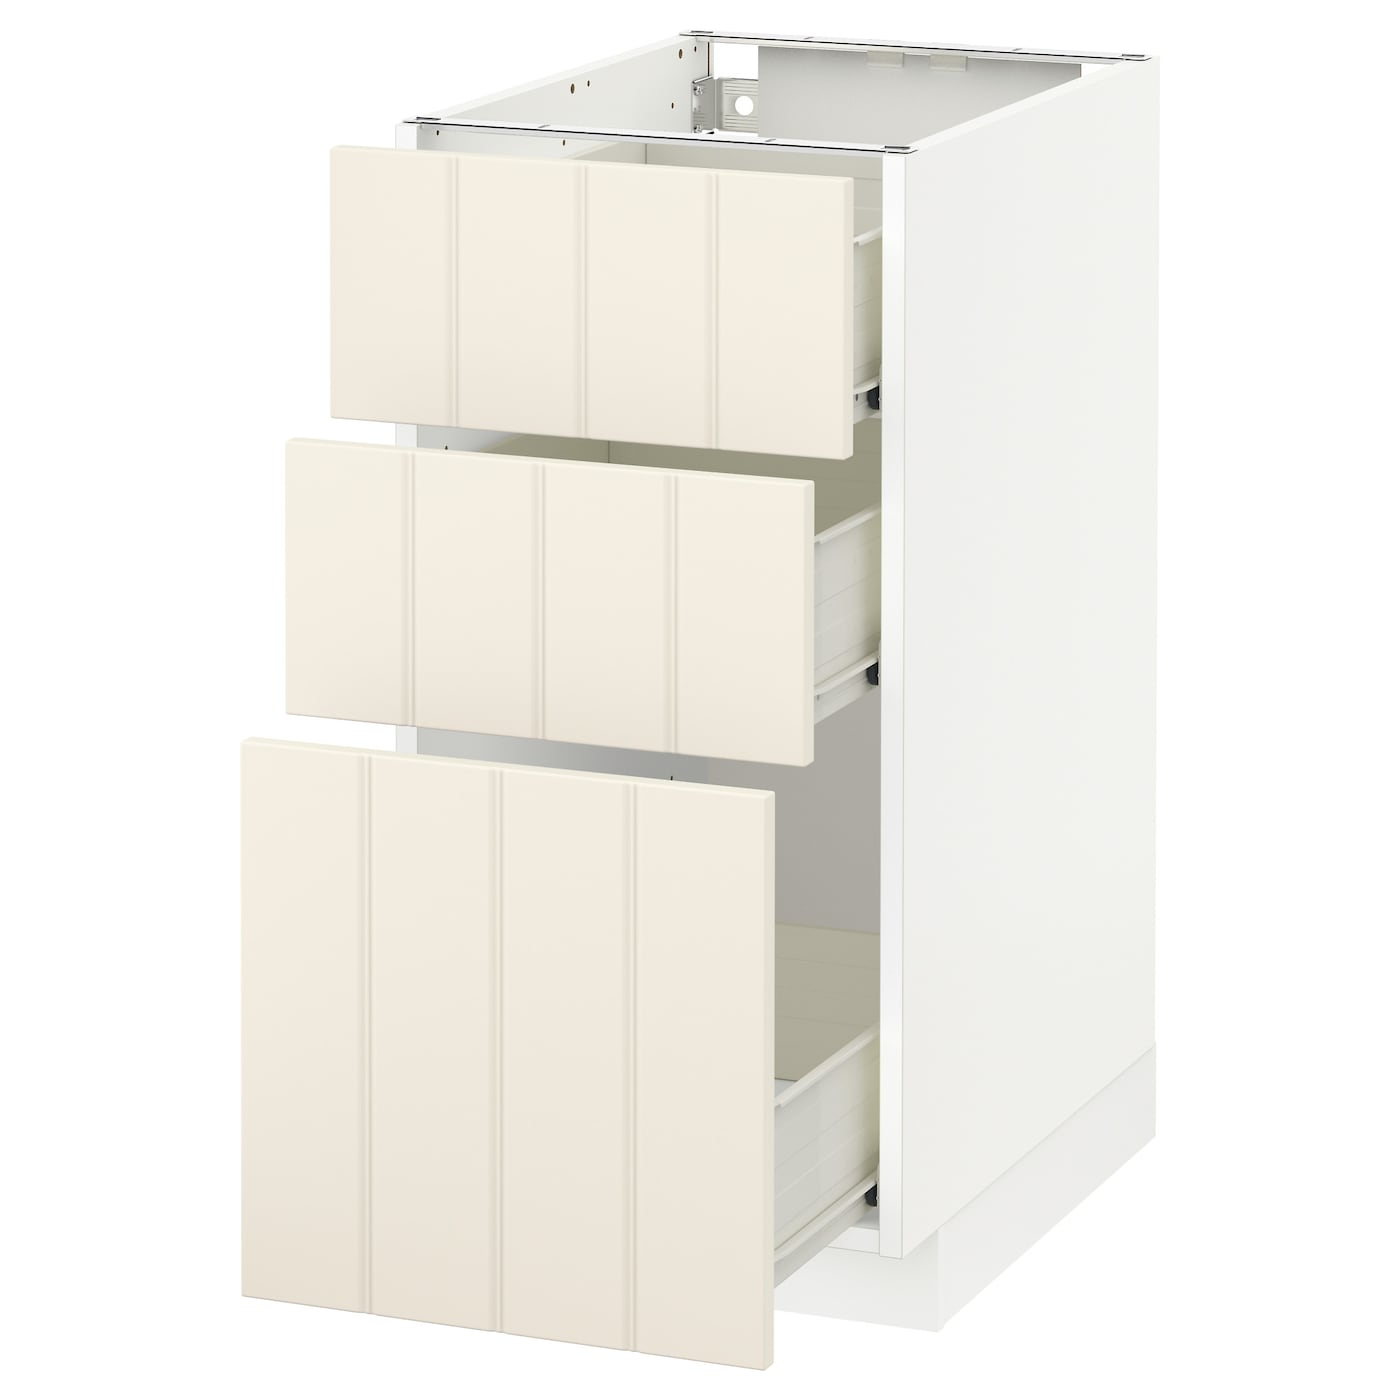 IKEA METOD/FÖRVARA base cabinet with 3 drawers Sturdy frame construction, 18 mm thick.